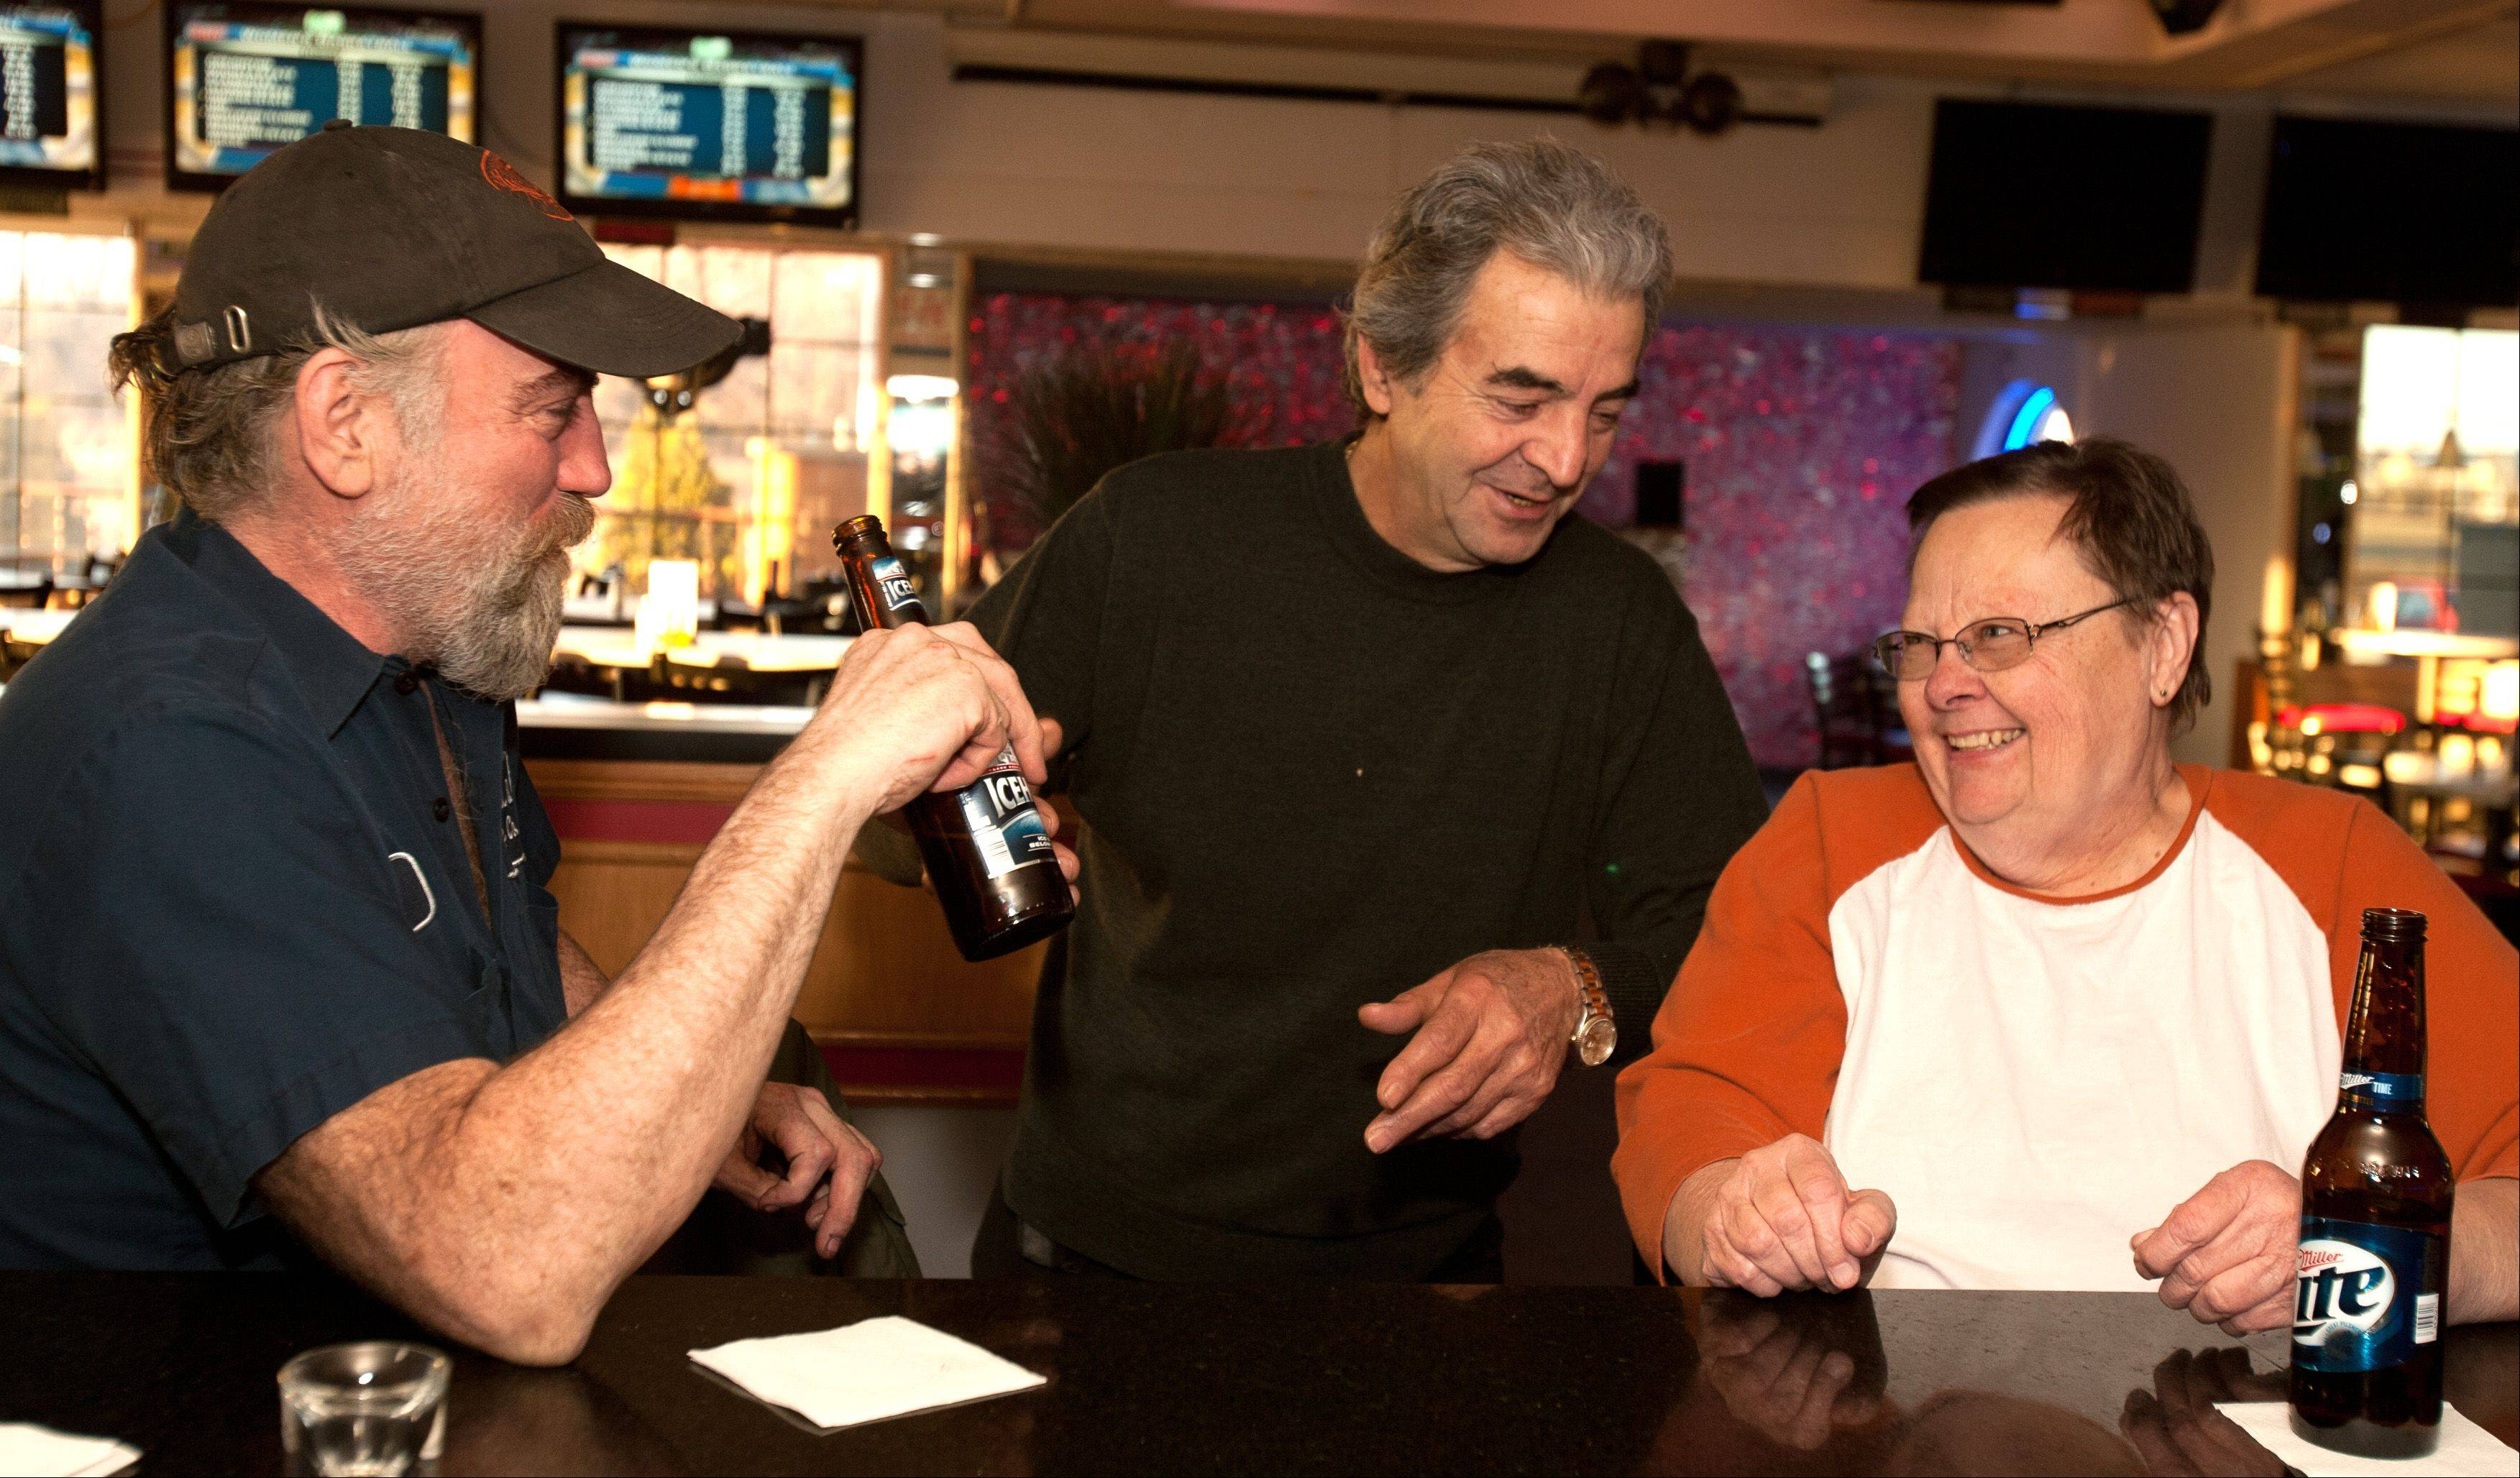 Shawn Farnand, left, Dennis Theros and Nancy Michalski share a laugh over drinks at Club Shotz in Carol Stream.